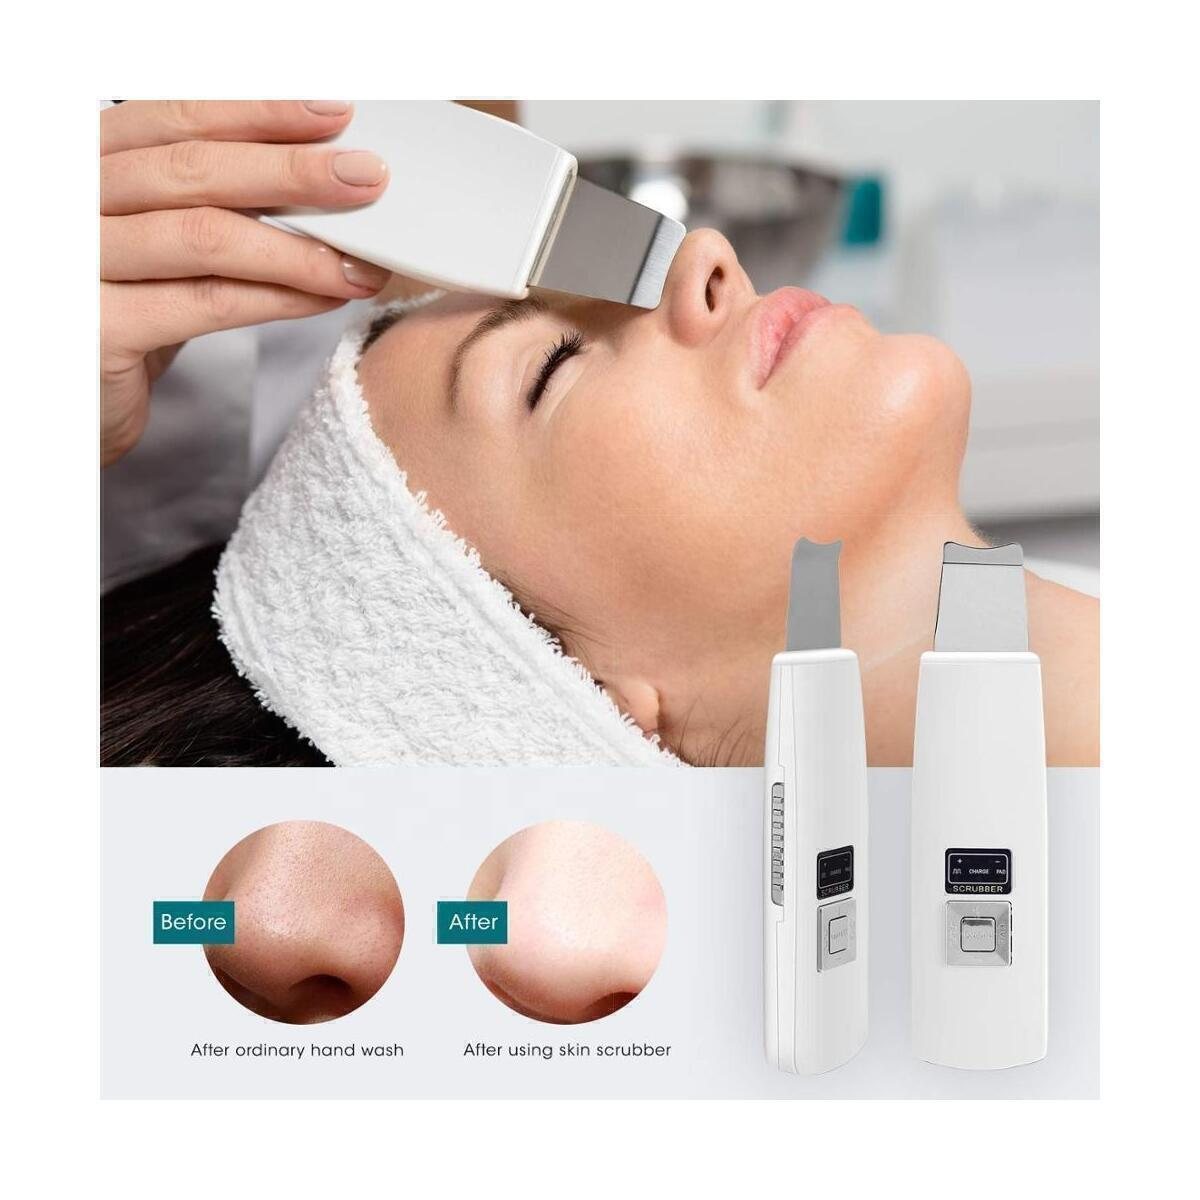 SkinAngel Ultrasonic Ionic Skin Scrubber ***65% OFF our retail price***